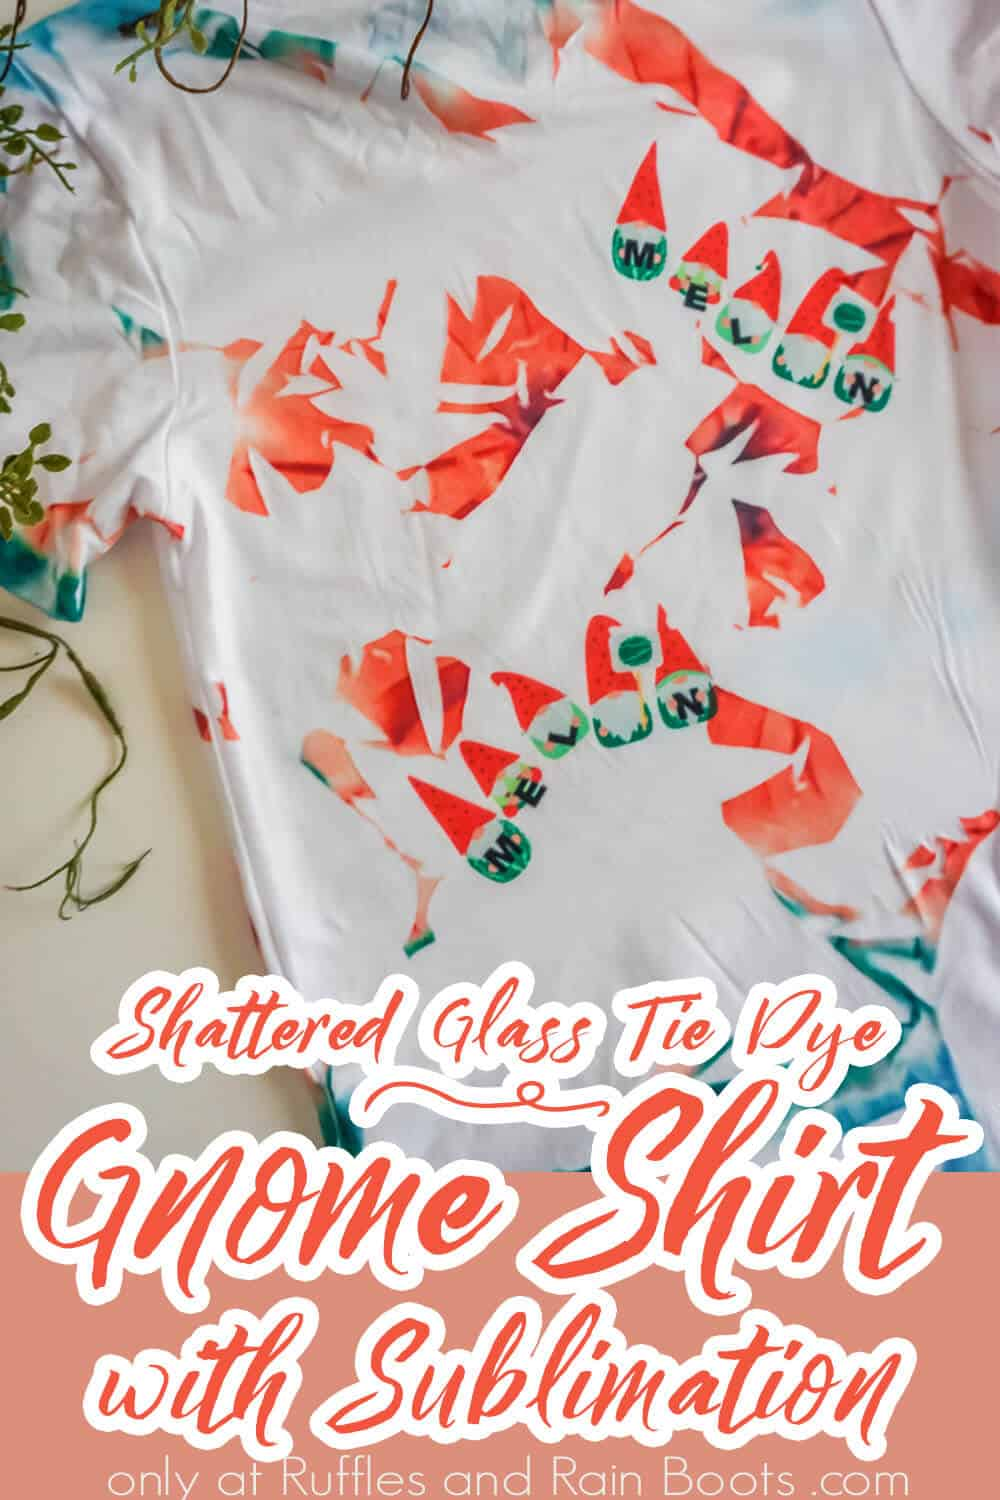 sublimation gnome shirt with text which reads shattered glass tie dye gnome shirt with sublimation